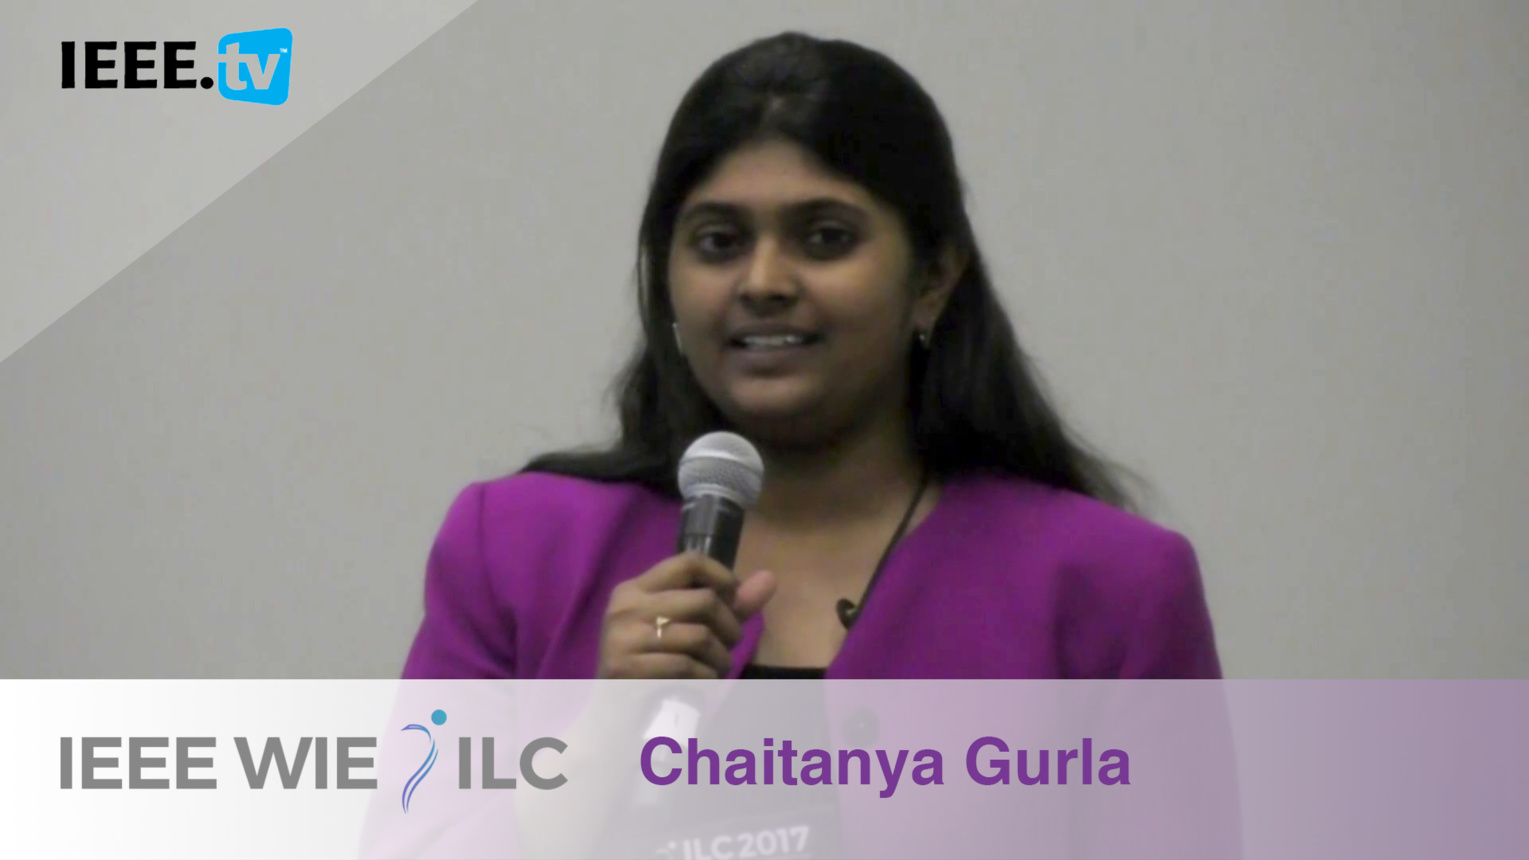 Chaitanya Gurla: Student Branch Affinity Group of the Year Honorable Mention - IEEE WIE ILC Awards 2017